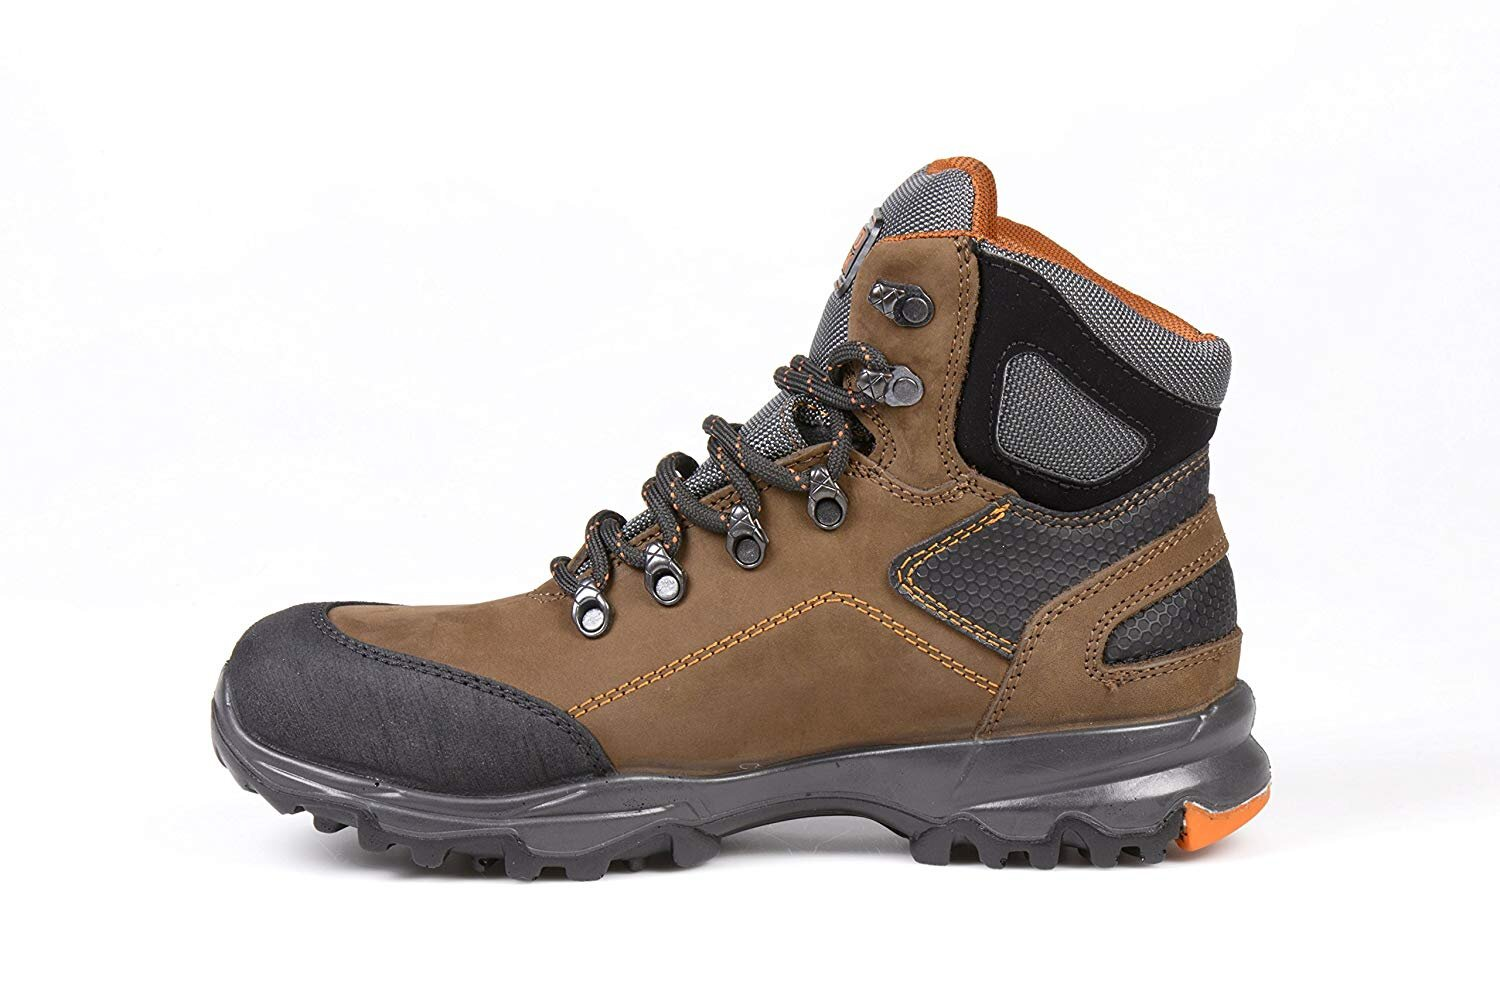 SATURNE BROWN SAFETY BOOT 4